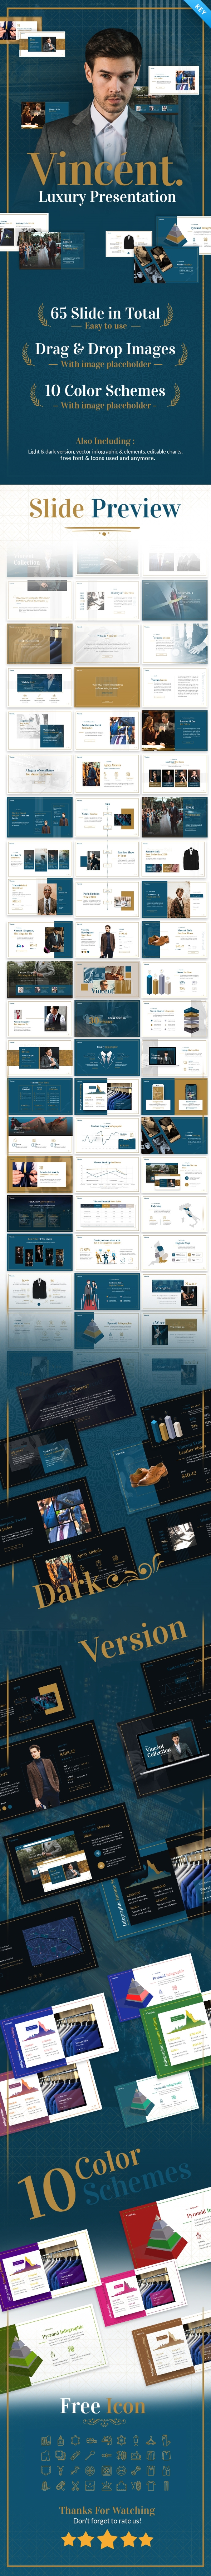 Vincent Luxury Presentation Keynote Template Fully Animated